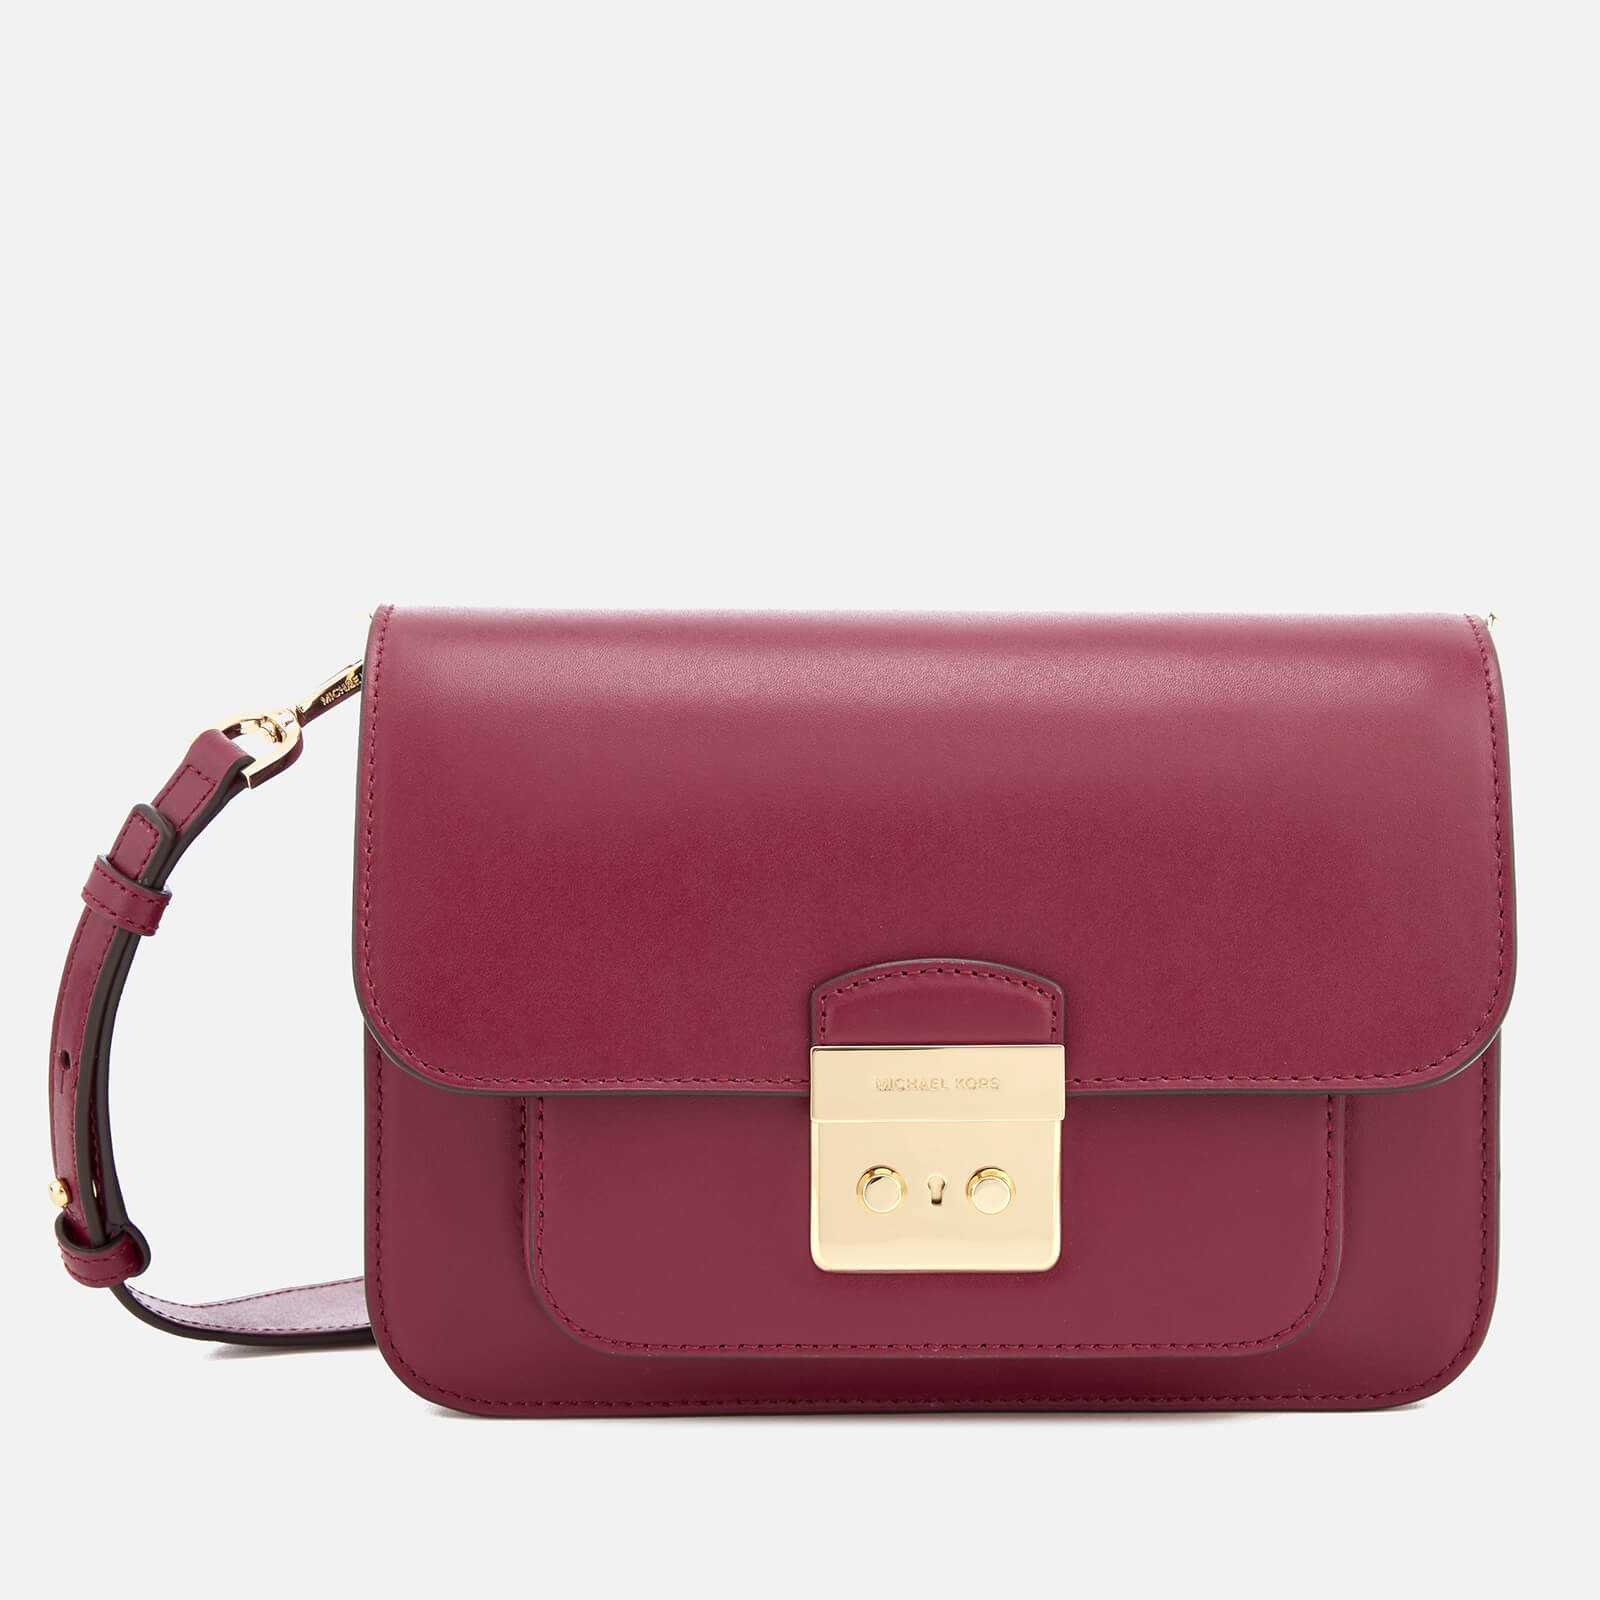 88a259e44c MICHAEL MICHAEL KORS Women s Sloan Editor Large Shoulder Bag - Mulberry -  Free UK Delivery over £50